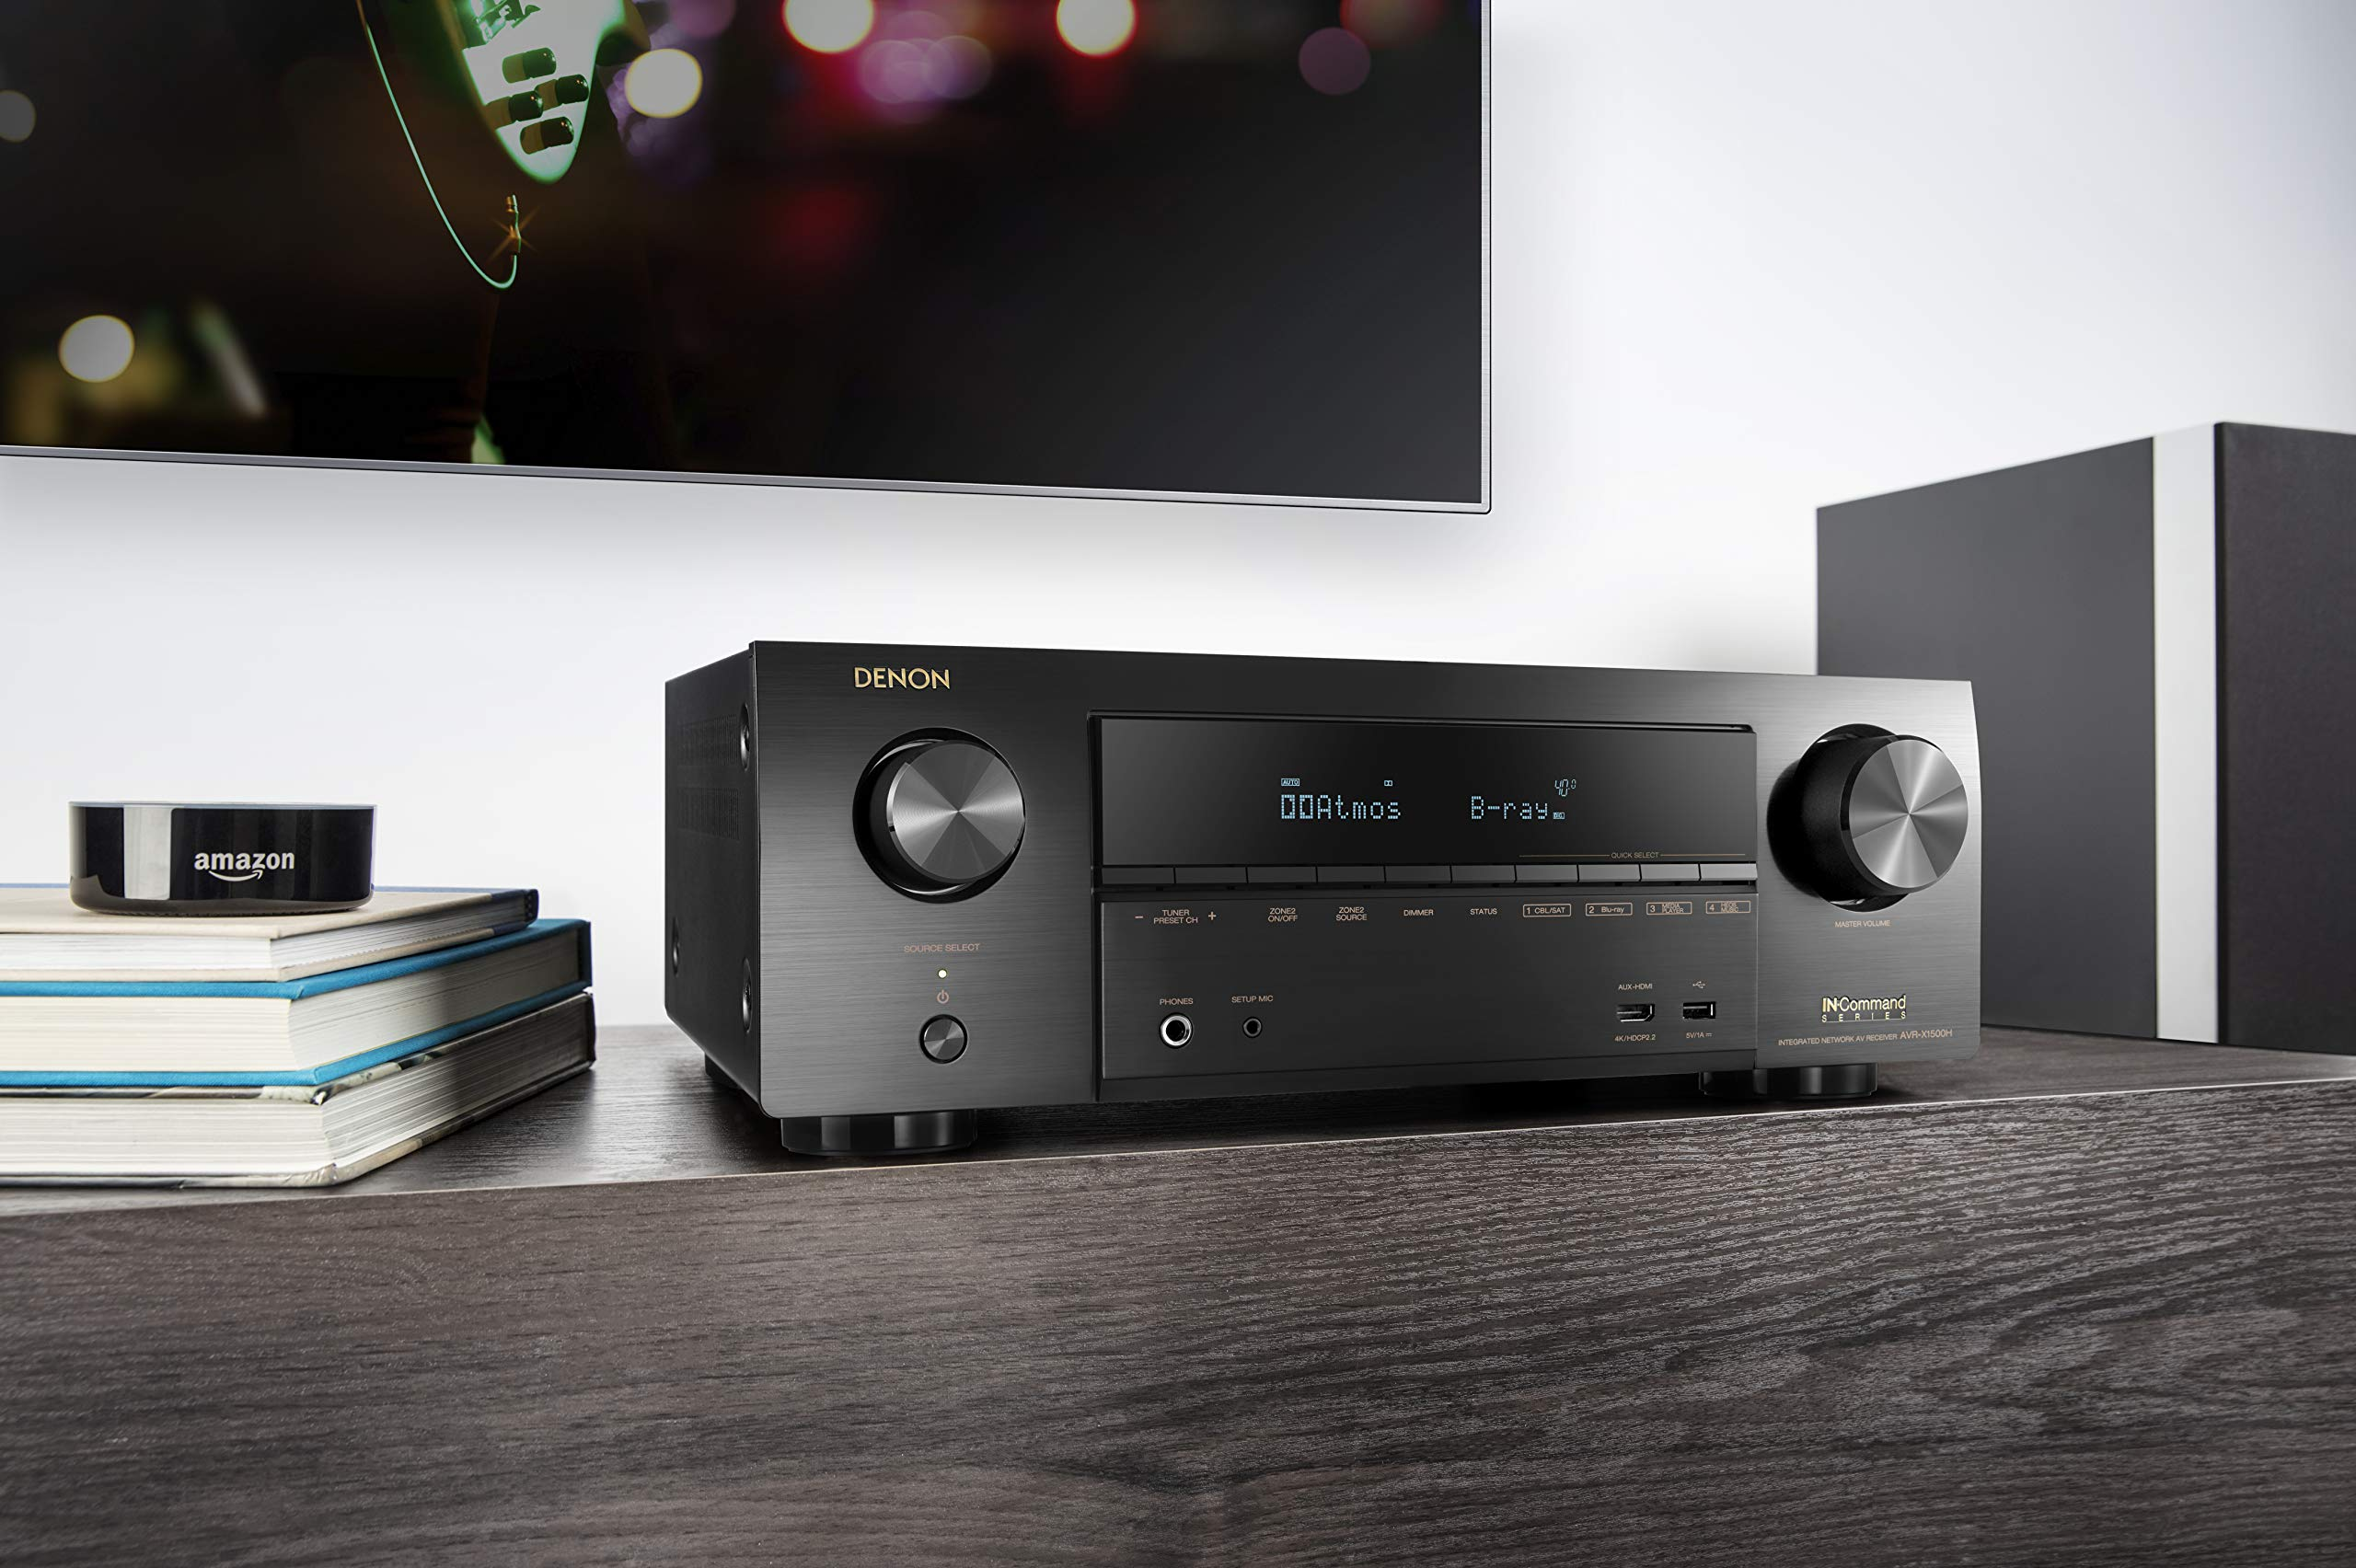 Denon AVR-X1500H Receiver - HDR10, 3D video support | 7.2 Channel (80W per channel) 4K Ultra HD Video | Home Theater Dolby Surround Sound | Music Streaming System with Alexa Control